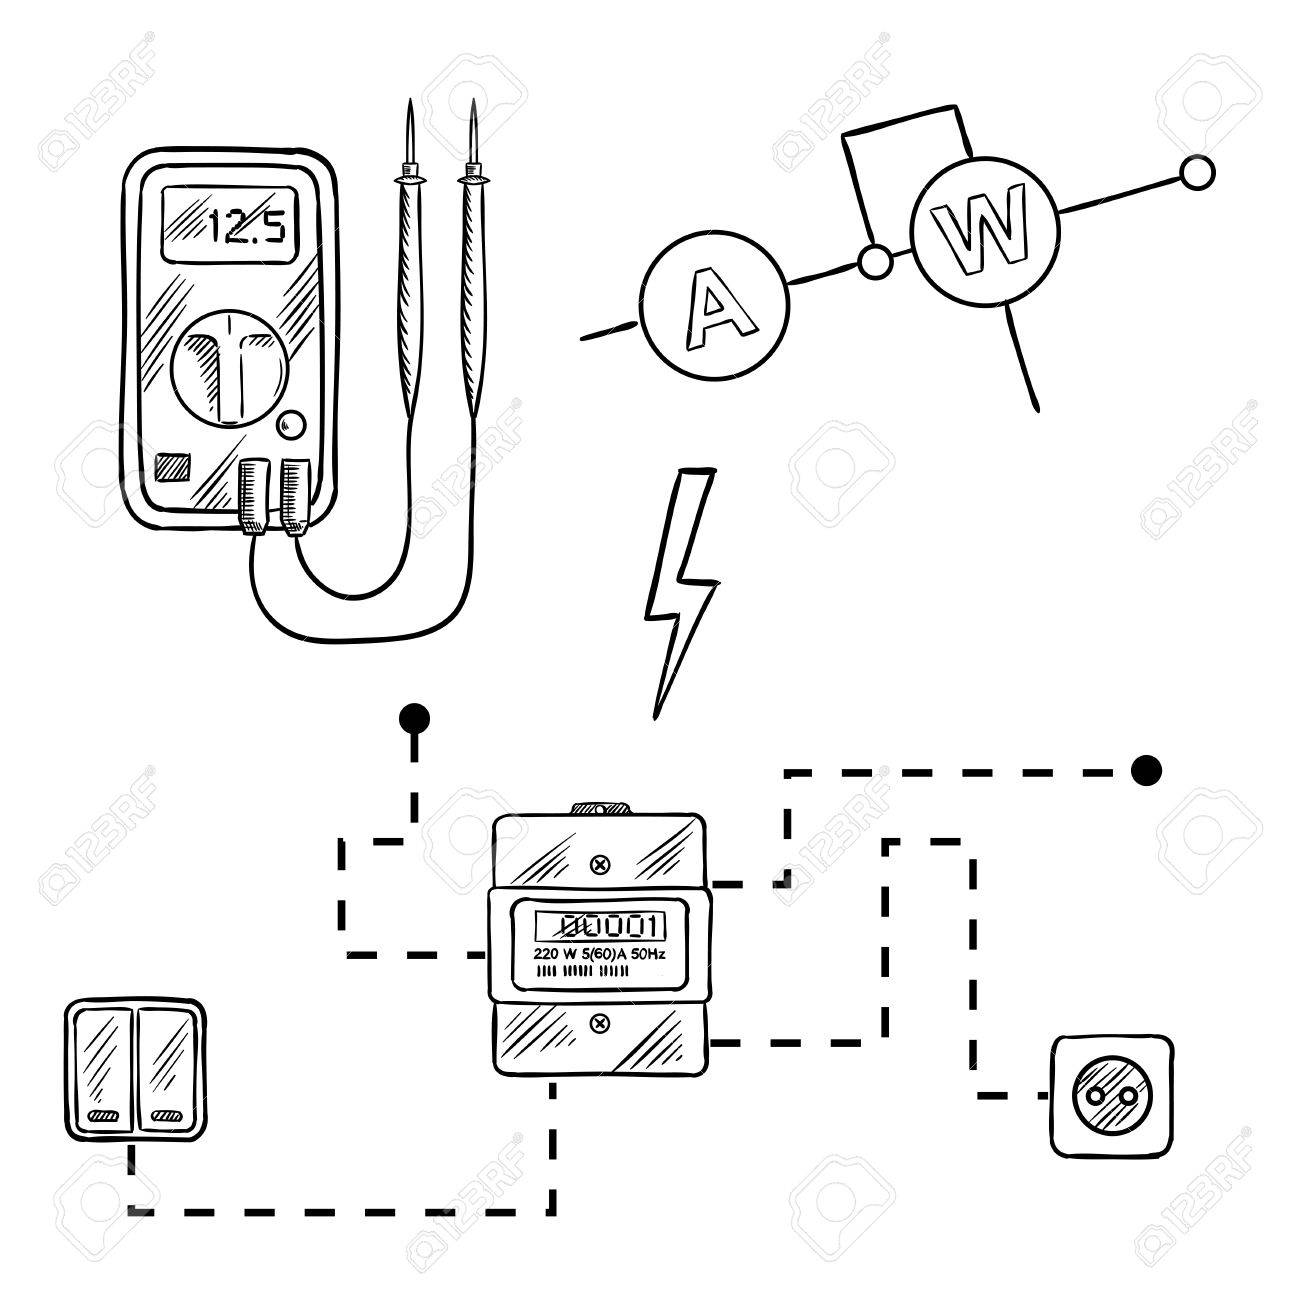 electrical drawing icons the wiring diagram electrical drawing icons vidim wiring diagram electrical drawing